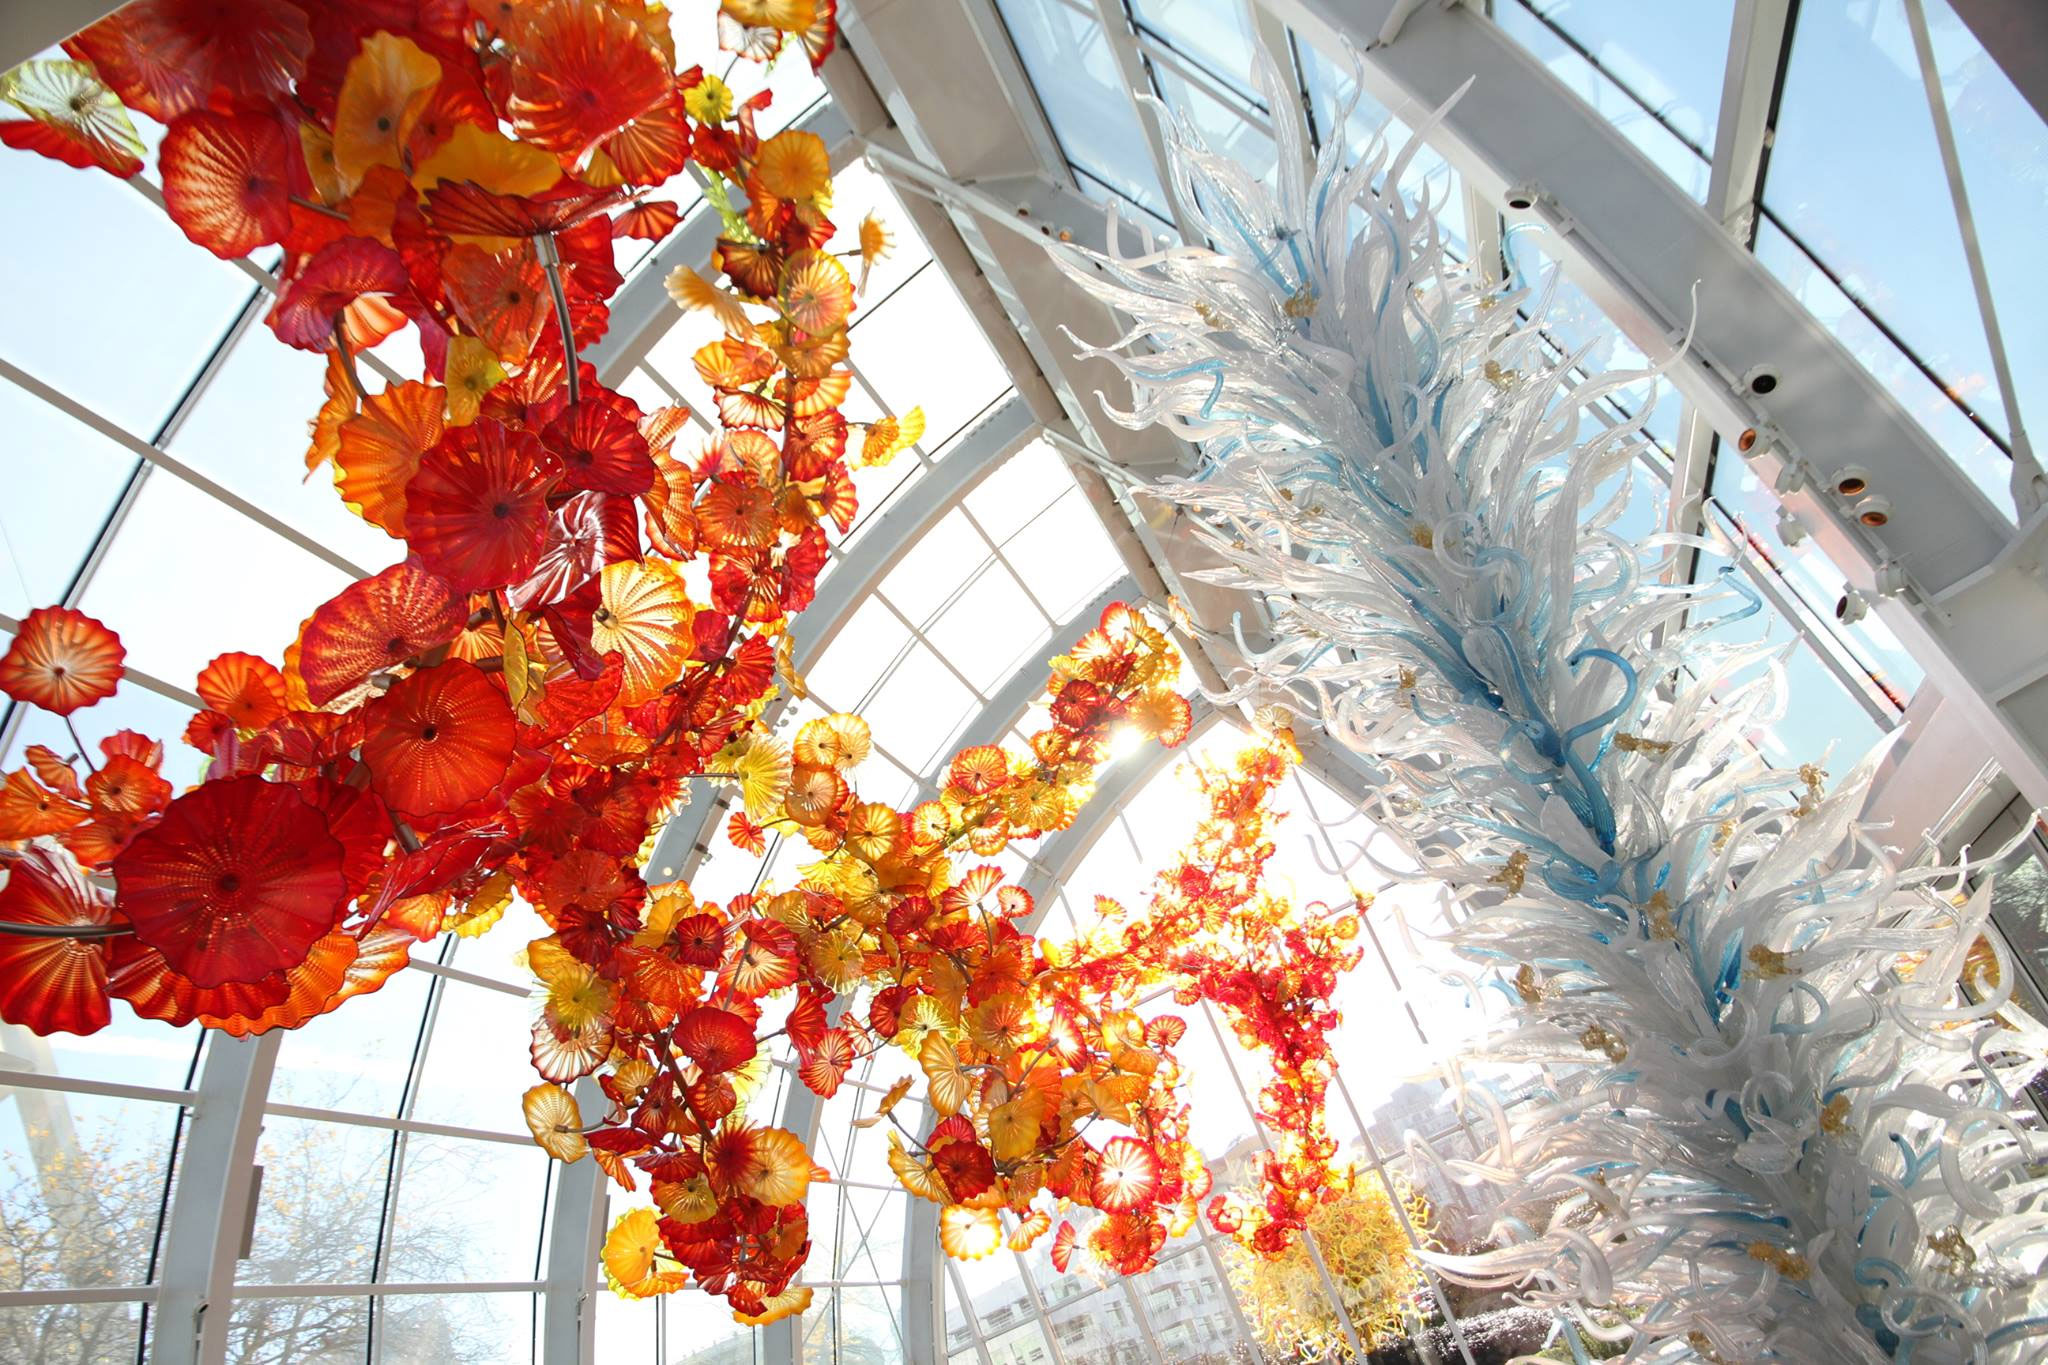 A blown glass sculpture at the Chihuly Garden and Glass in Seattle, Wash. Photo via Facebook.com/chihulygg